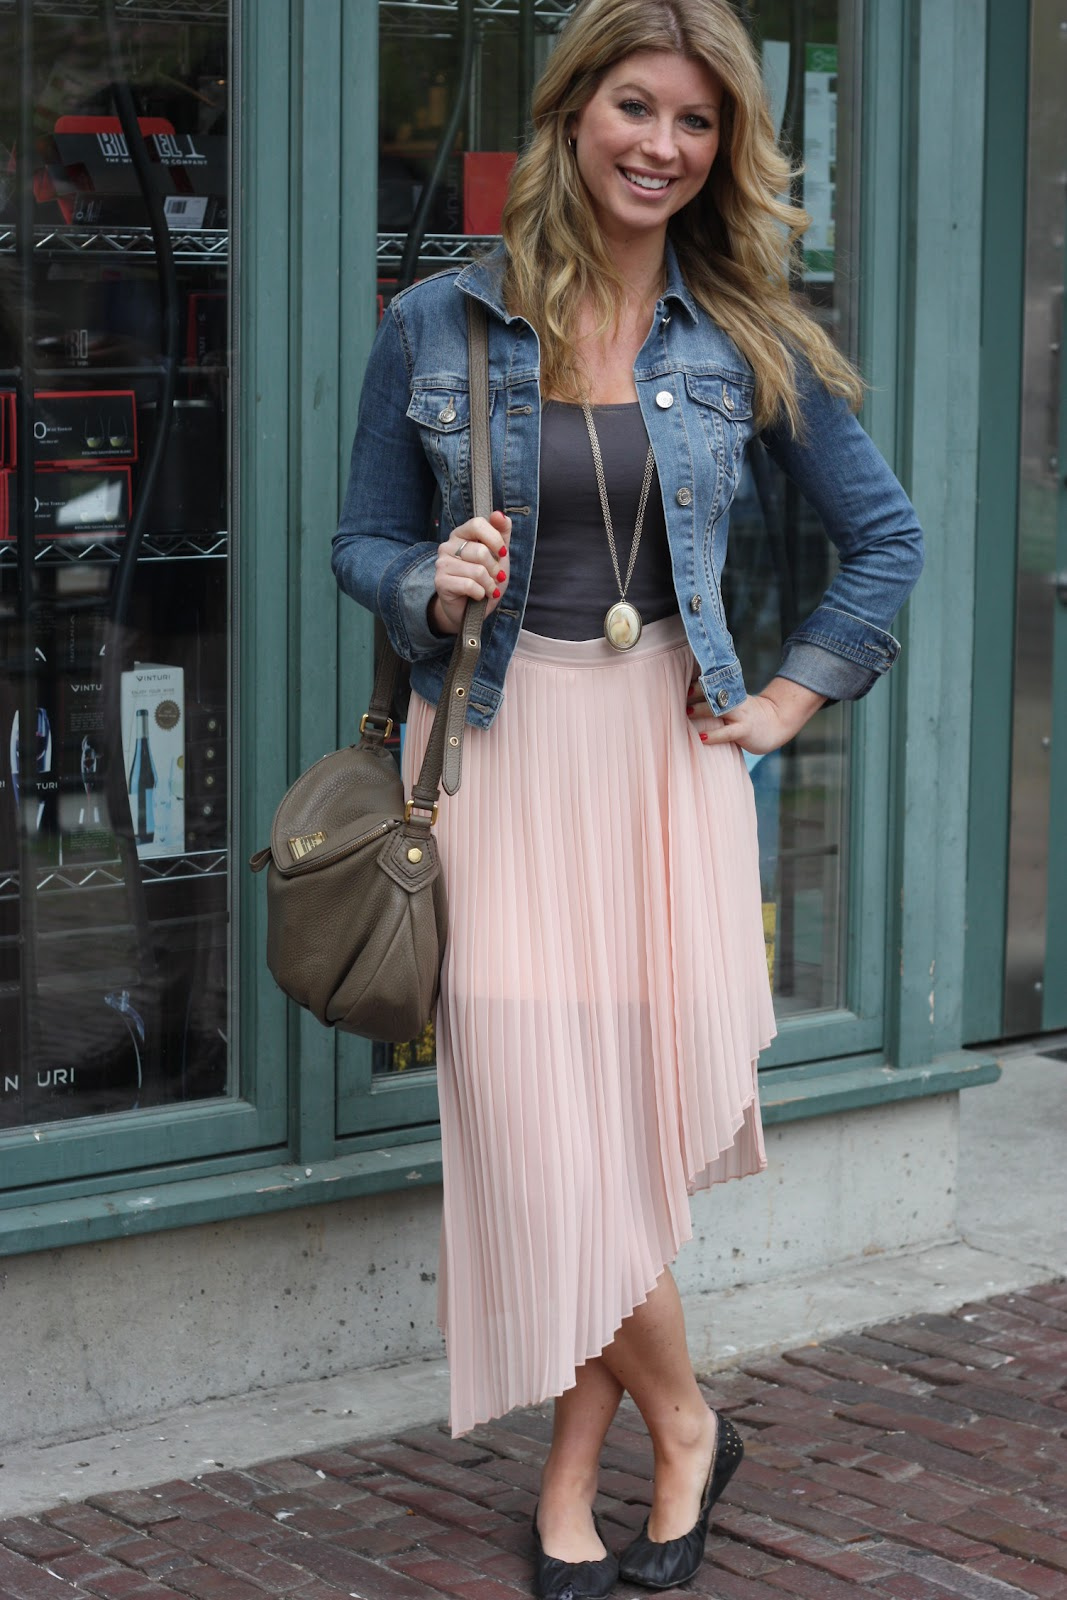 Black Maxi Skirt With Jean Jacket | Shopping Guide. We Are ...